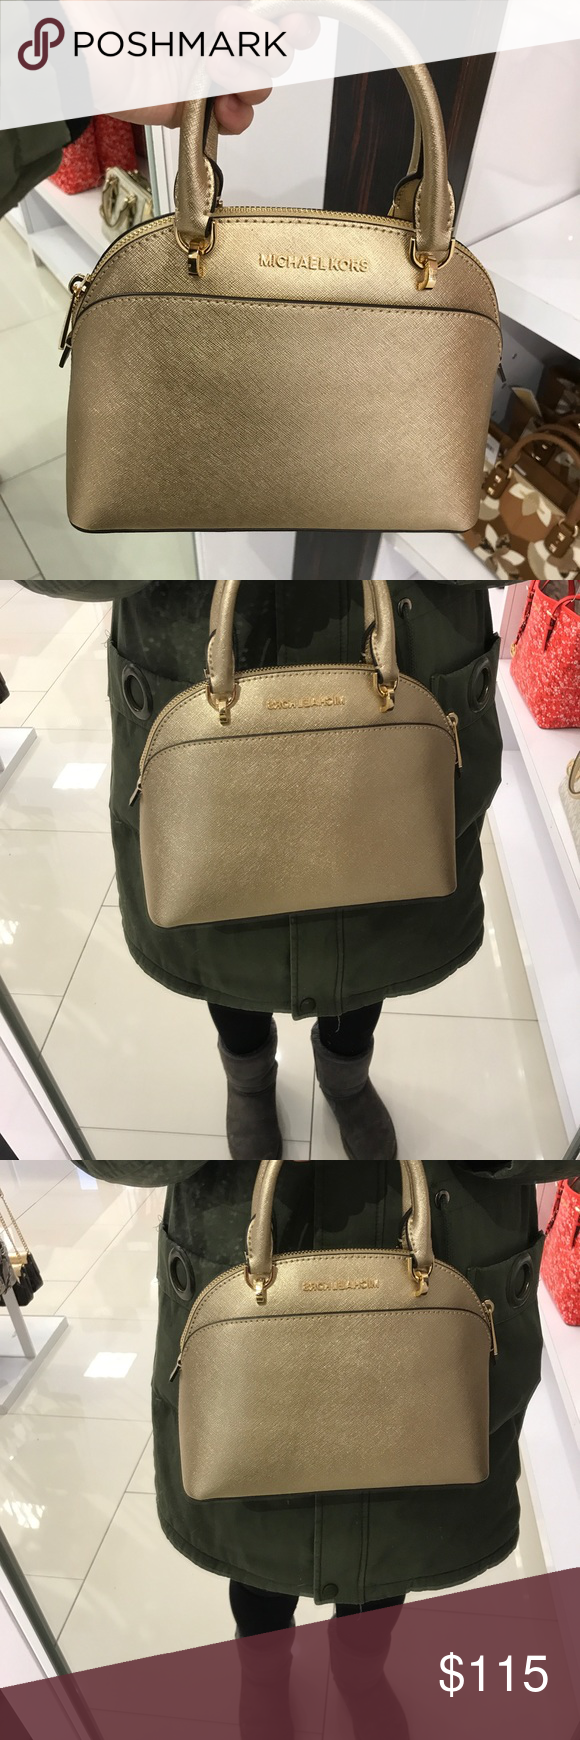 Michael Kors Emmy Small Dome Satchel Pale Gold NWT Micheal Kors Emmy Small  Dome Satchel in 968fad0d2bf66